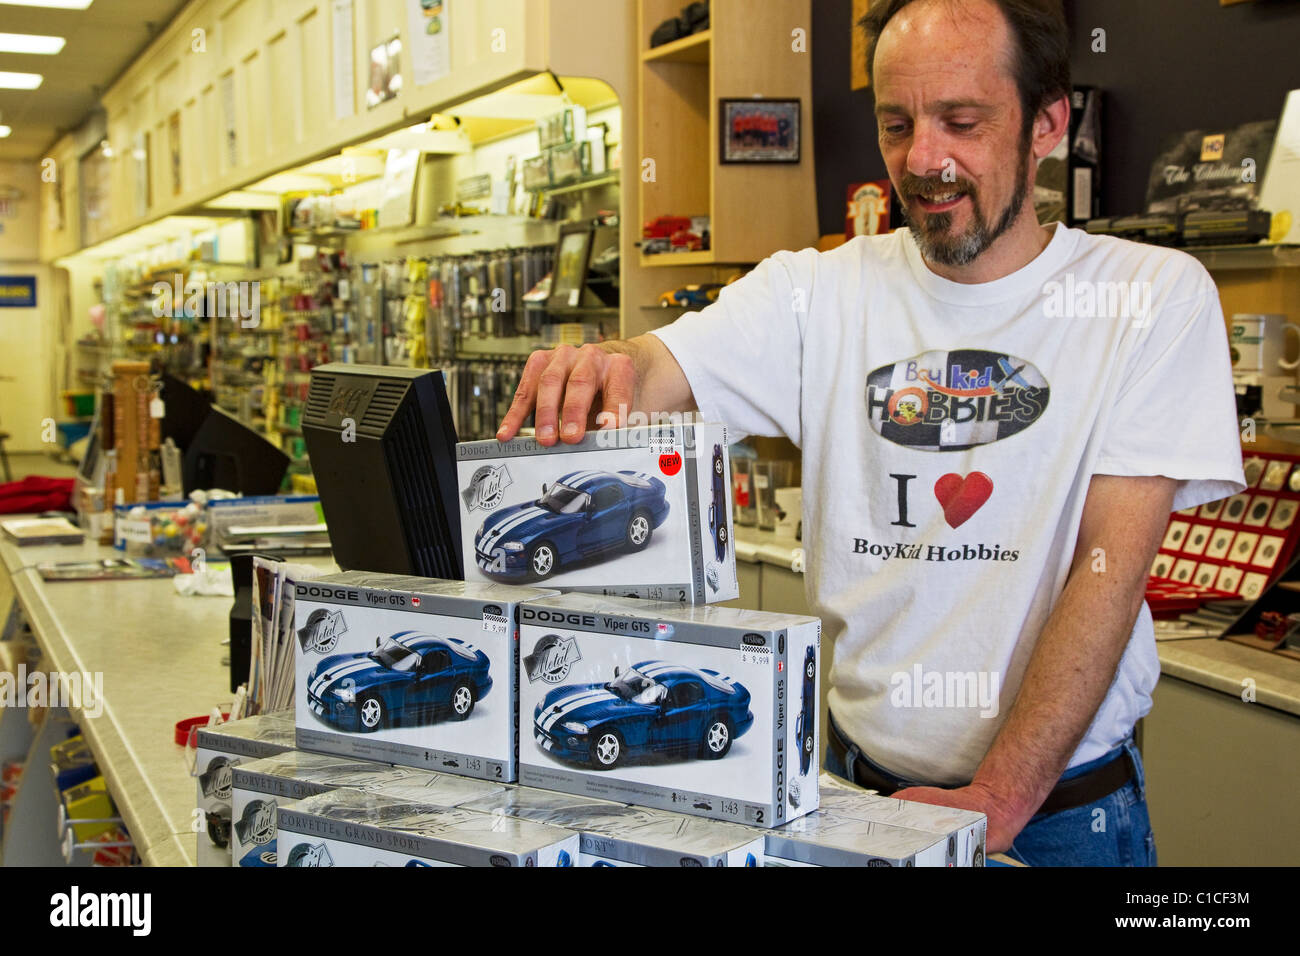 Hobby Shop magasin avec employé de magasin affichage model cars Photo Stock